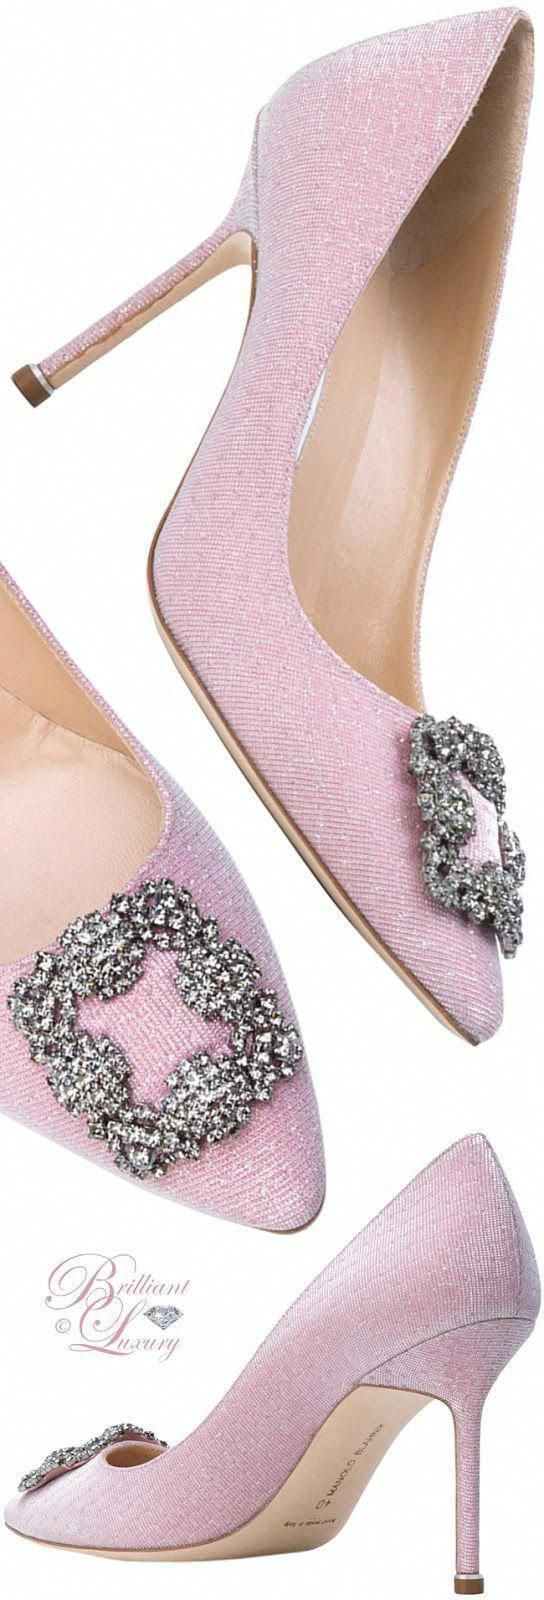 Brillanter Luxus von Emmy DE ♦ Manolo Blahnik Hangisi Pumps #ManoloblahnikHeels